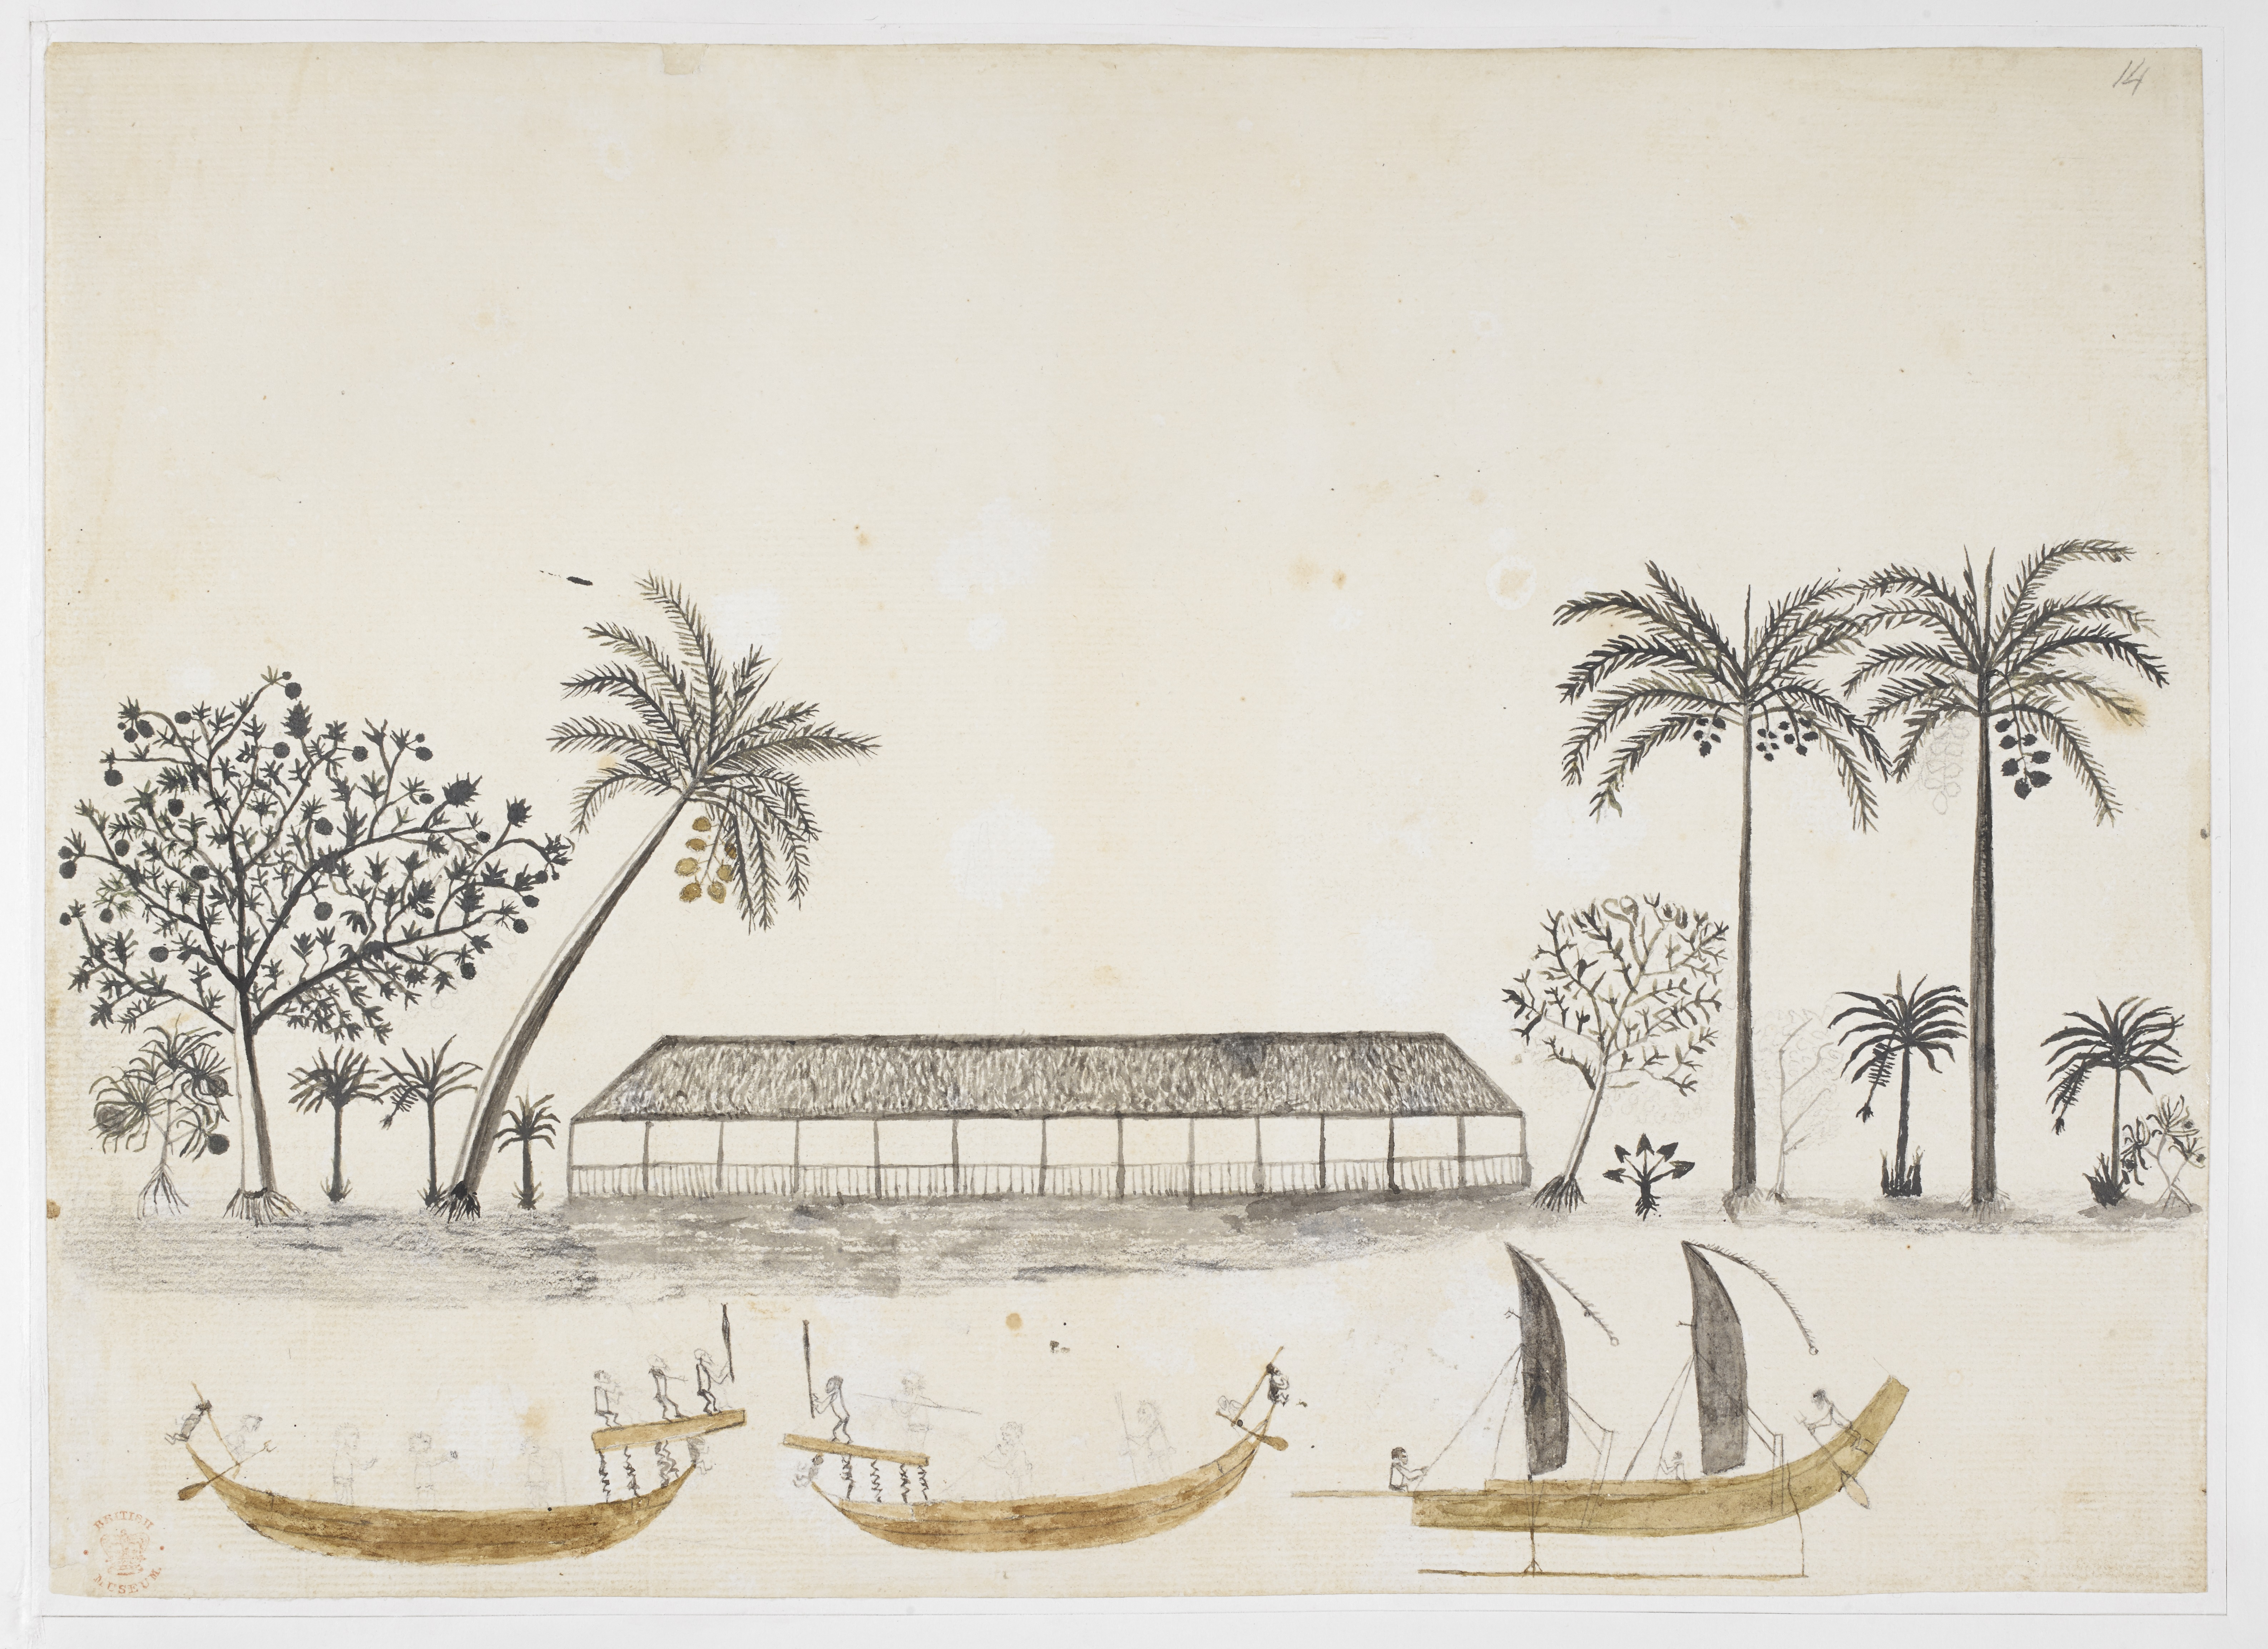 Polynesian longhouse in Tahiti with trees and plants; Tahitian canoes sailing in the foreground; by Tupai'a